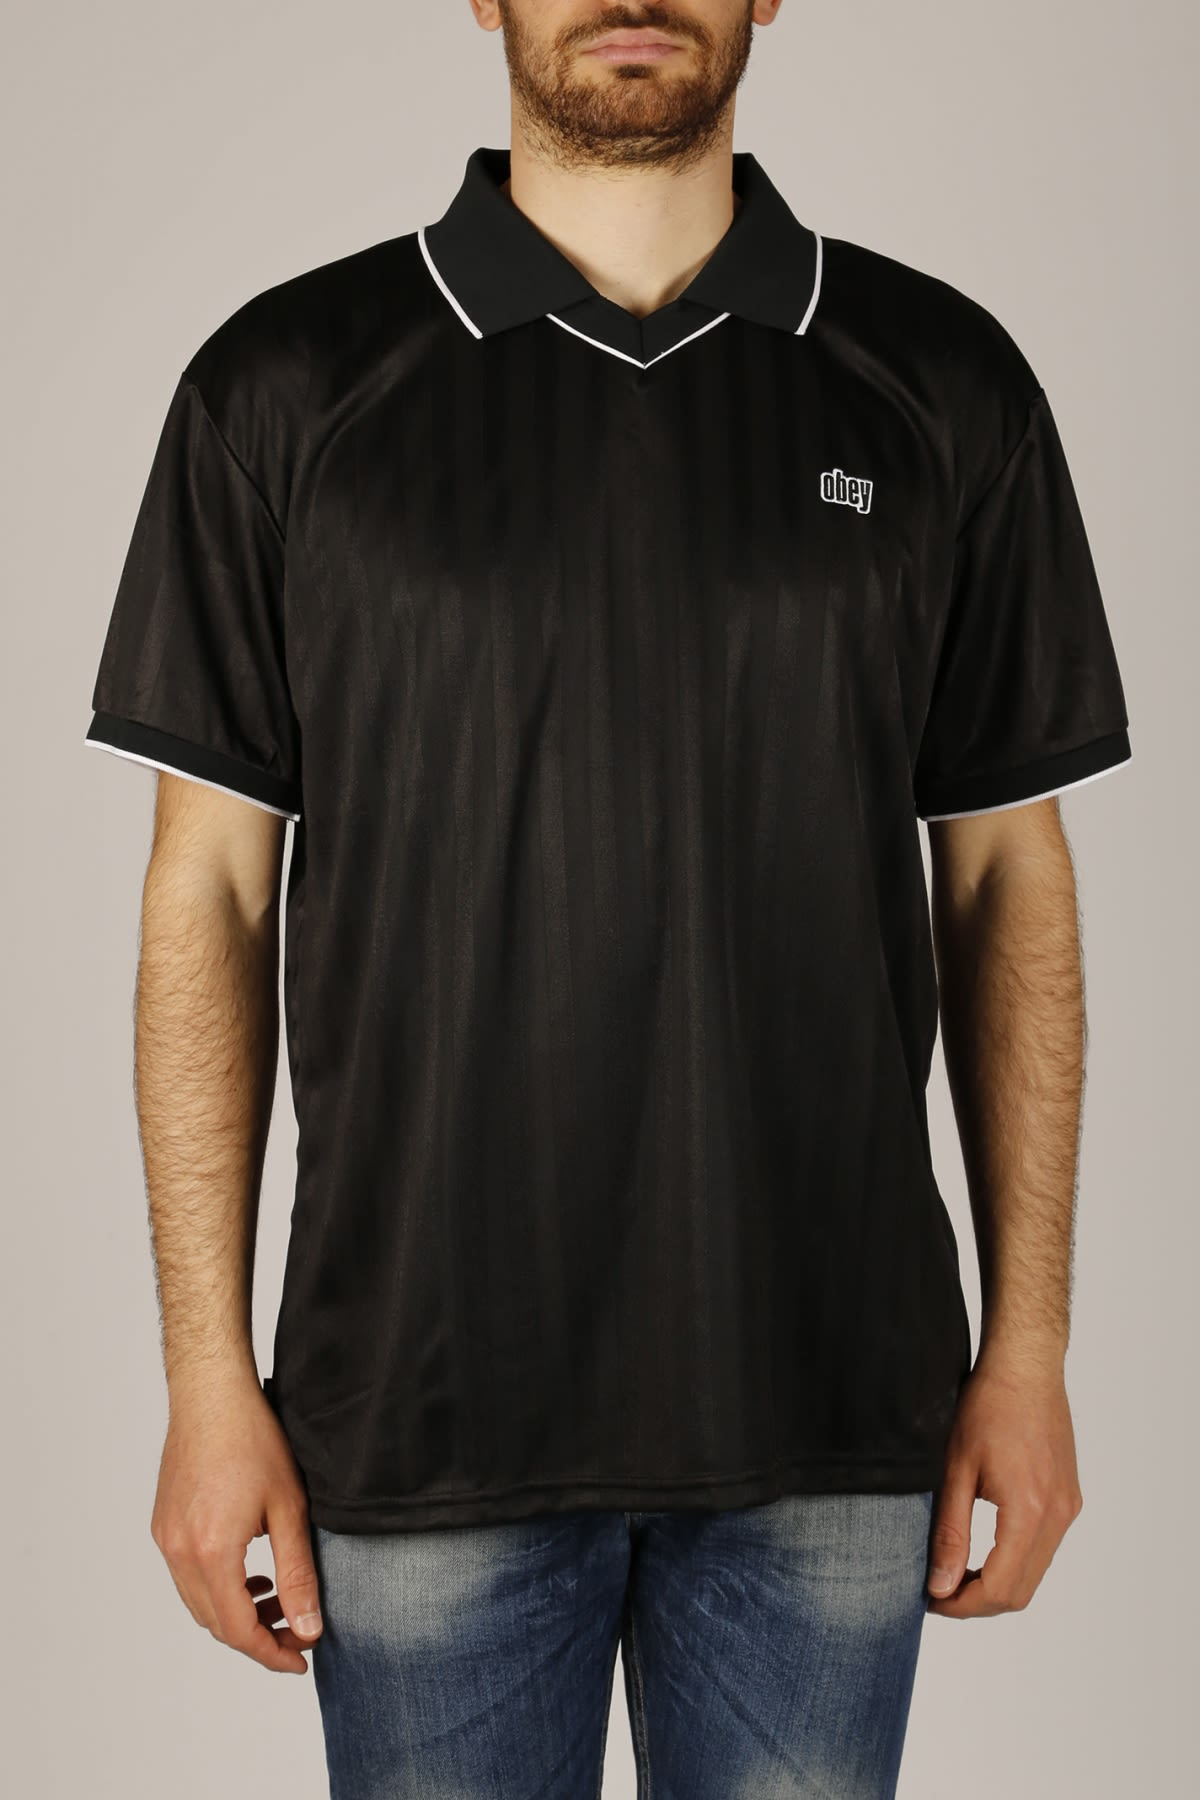 3410dfcb Obey Obey Polo Harry Soccer - Black - 10910882 | italist